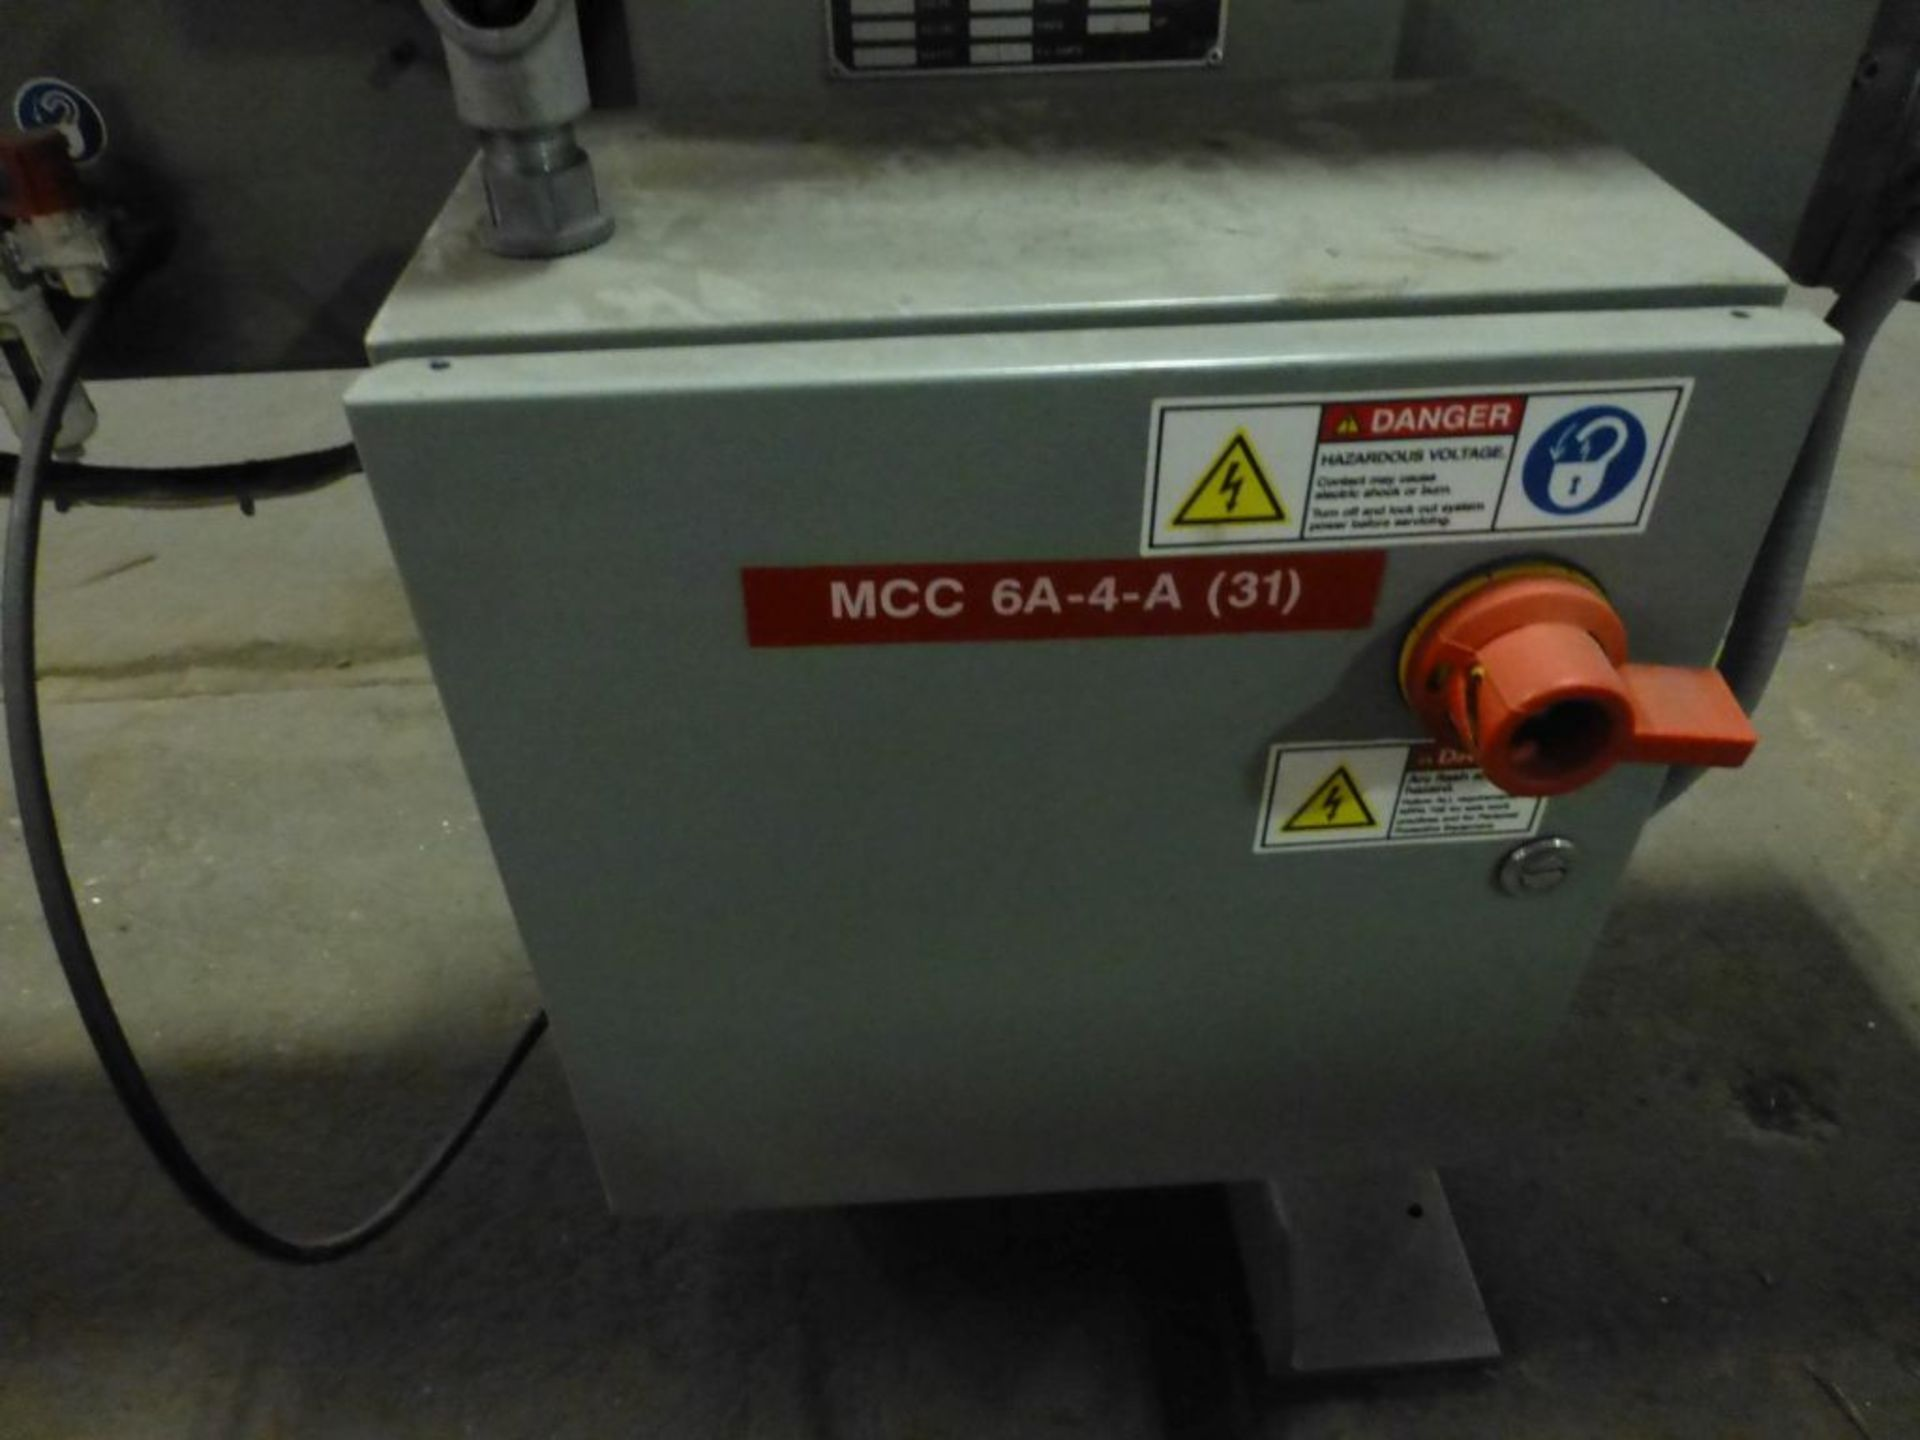 Appleton Automatic Core Cutter | Model No. A301; 2 HP; 460V; 3PH; Mfg: 2010 - Image 17 of 19